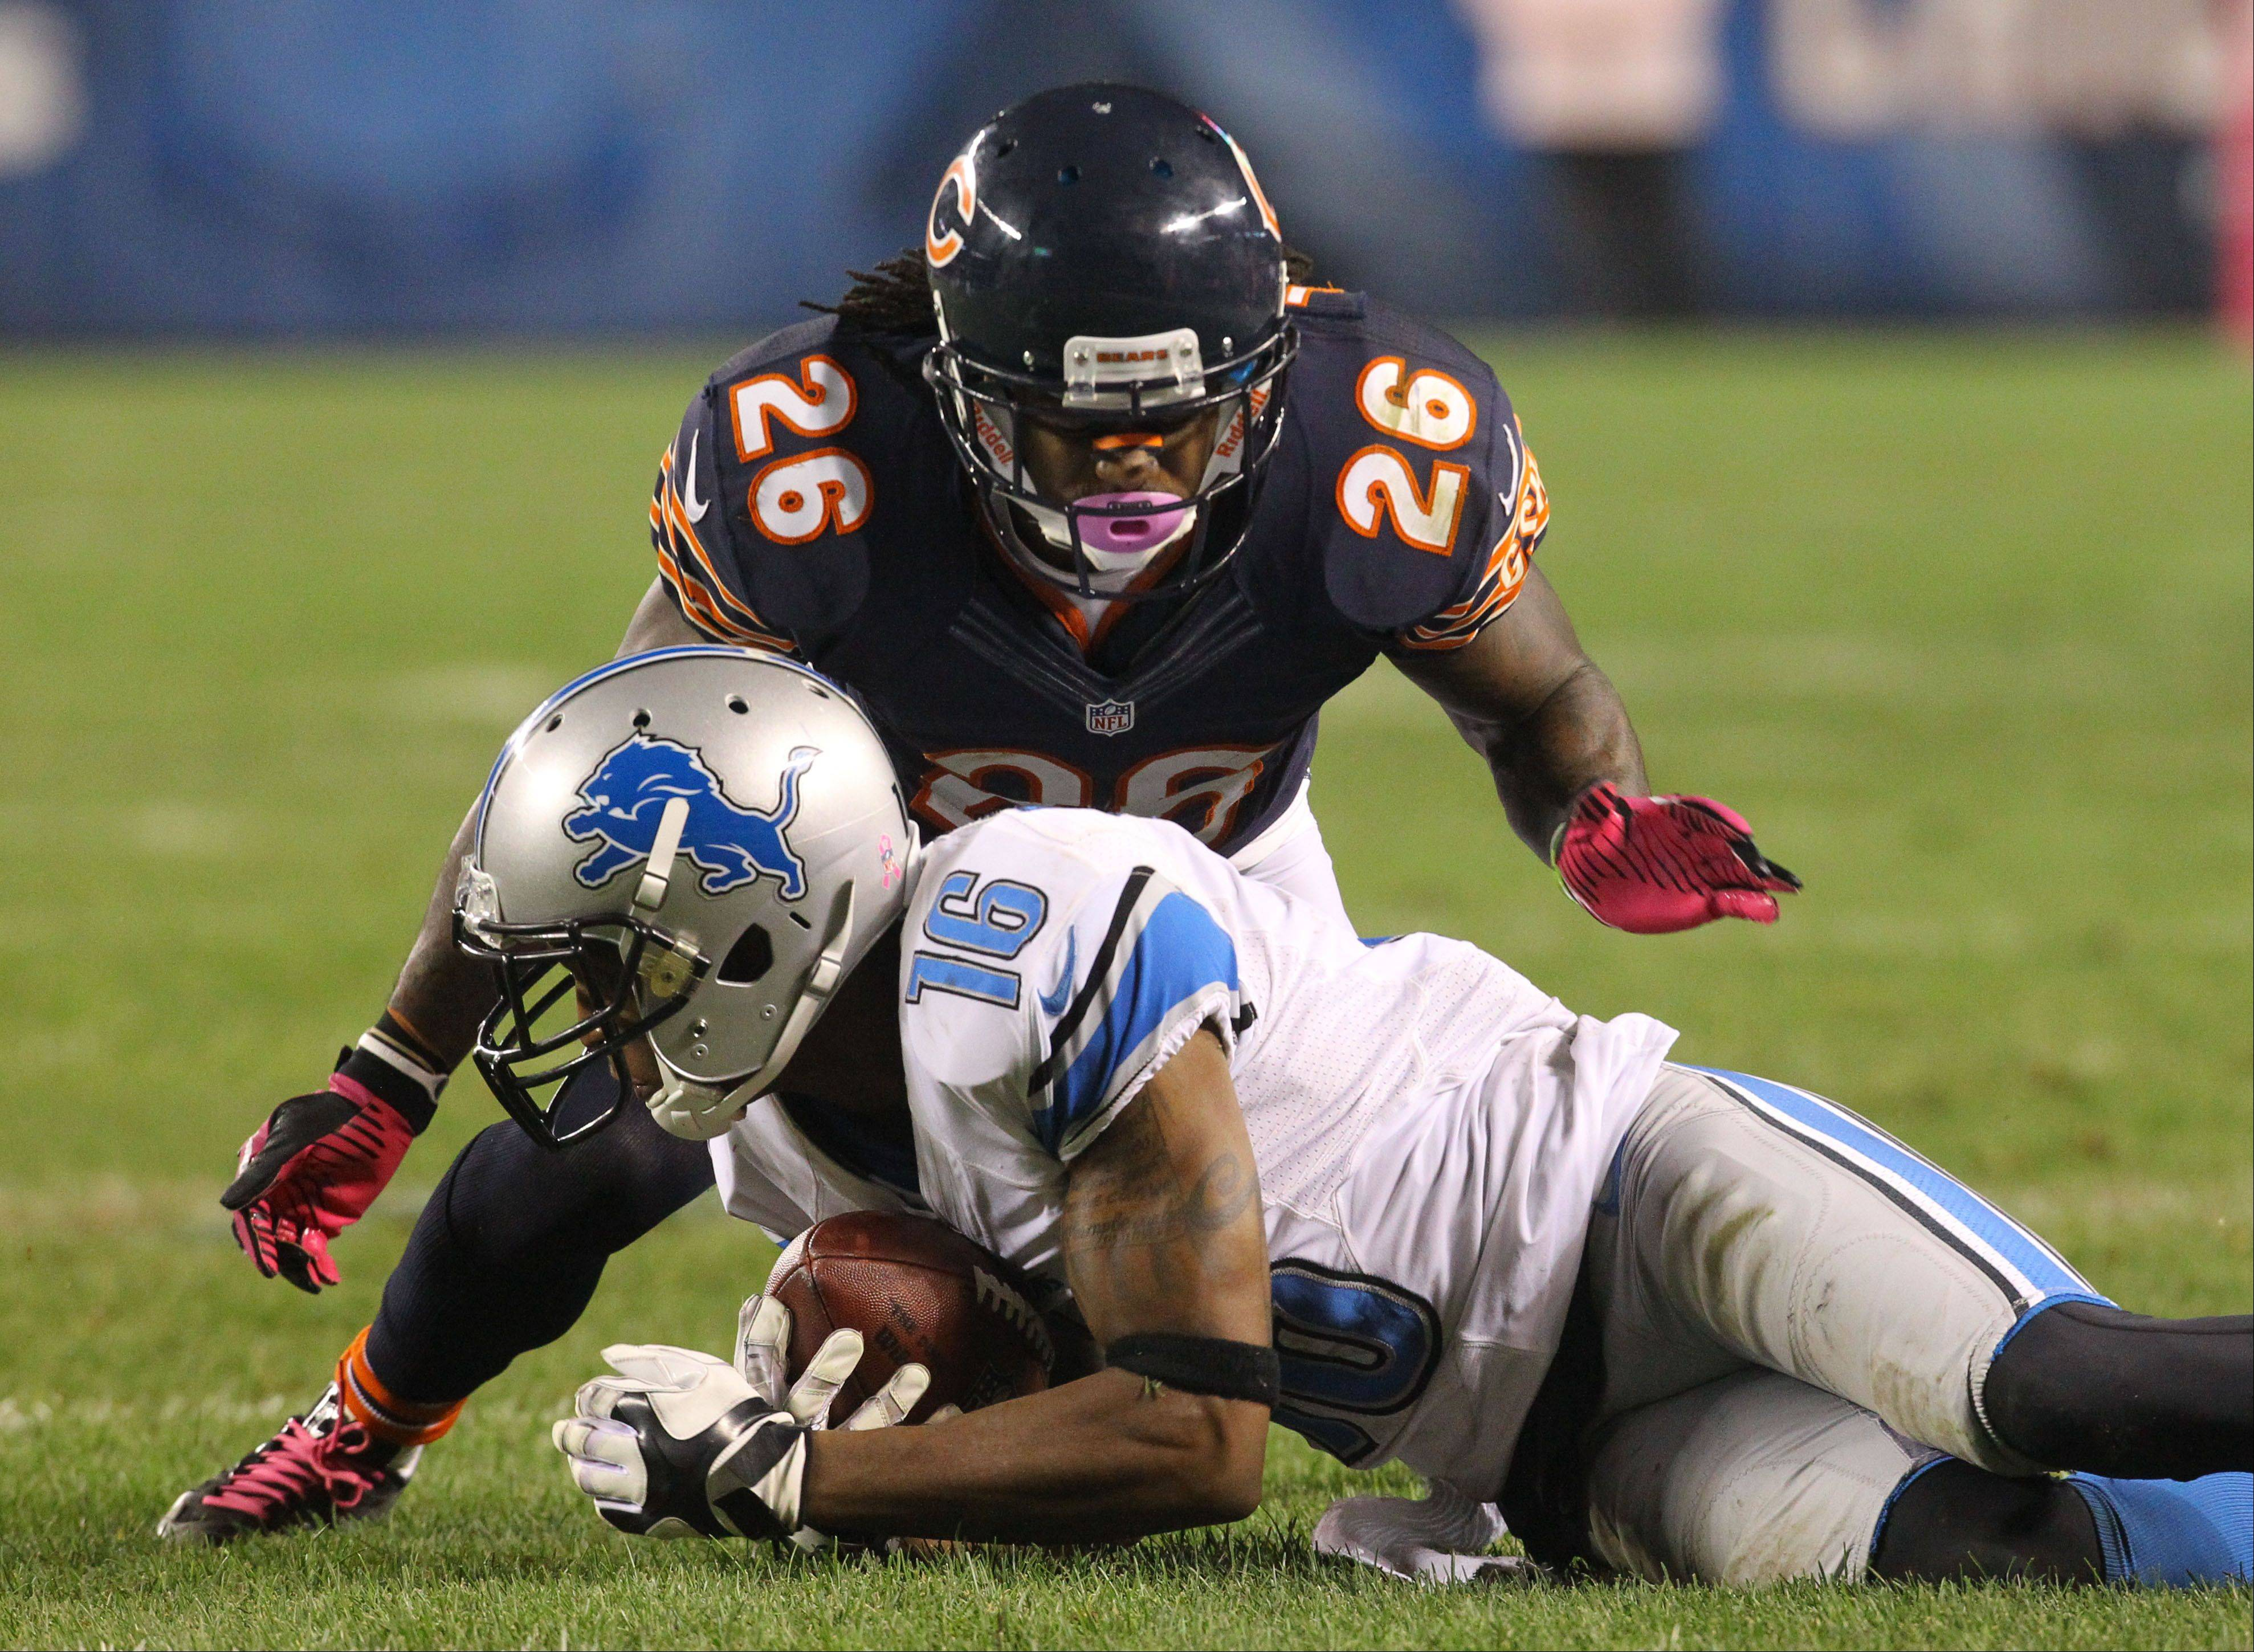 Chicago Bears cornerback Tim Jennings tackles Detroit Lions wide receiver Titus Young.